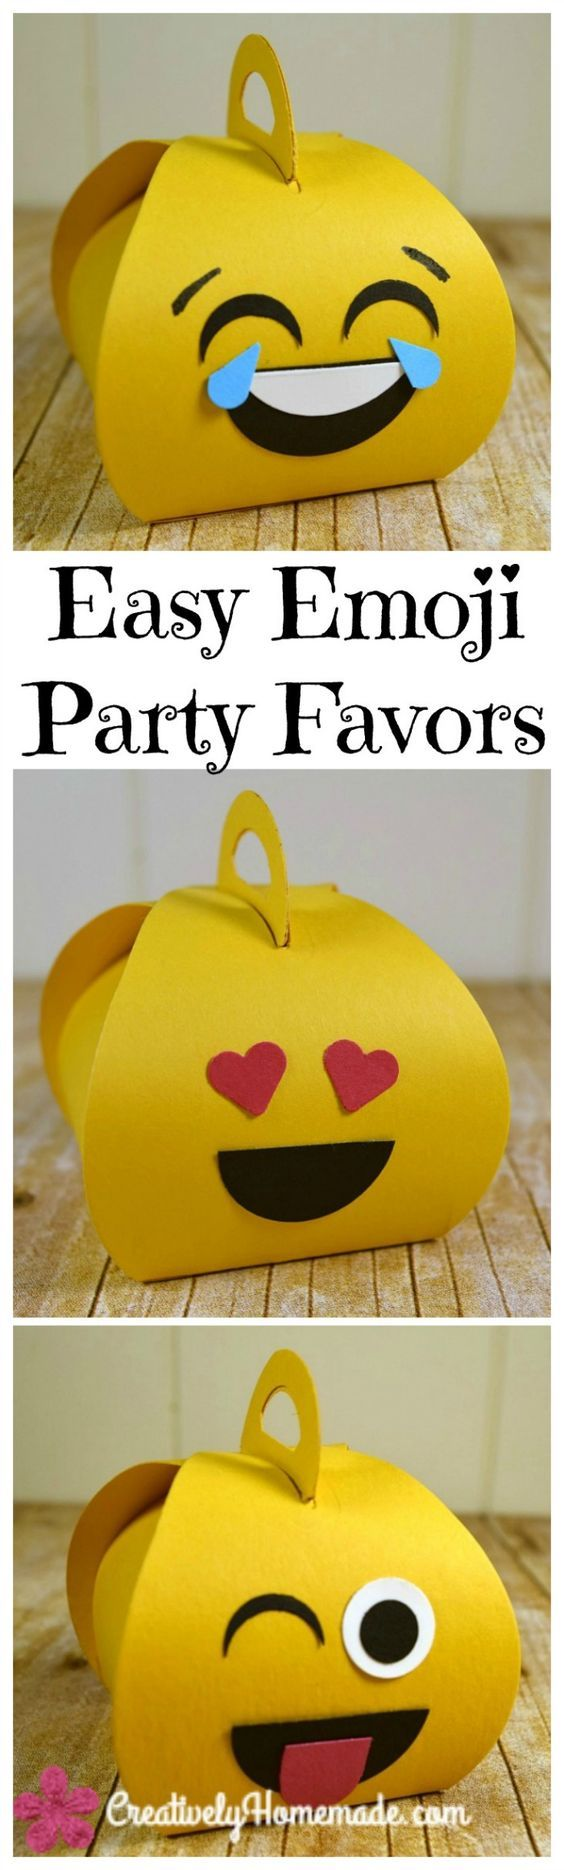 emoji party favors diy   emoji birthday party ideas   handmade party favors for kids